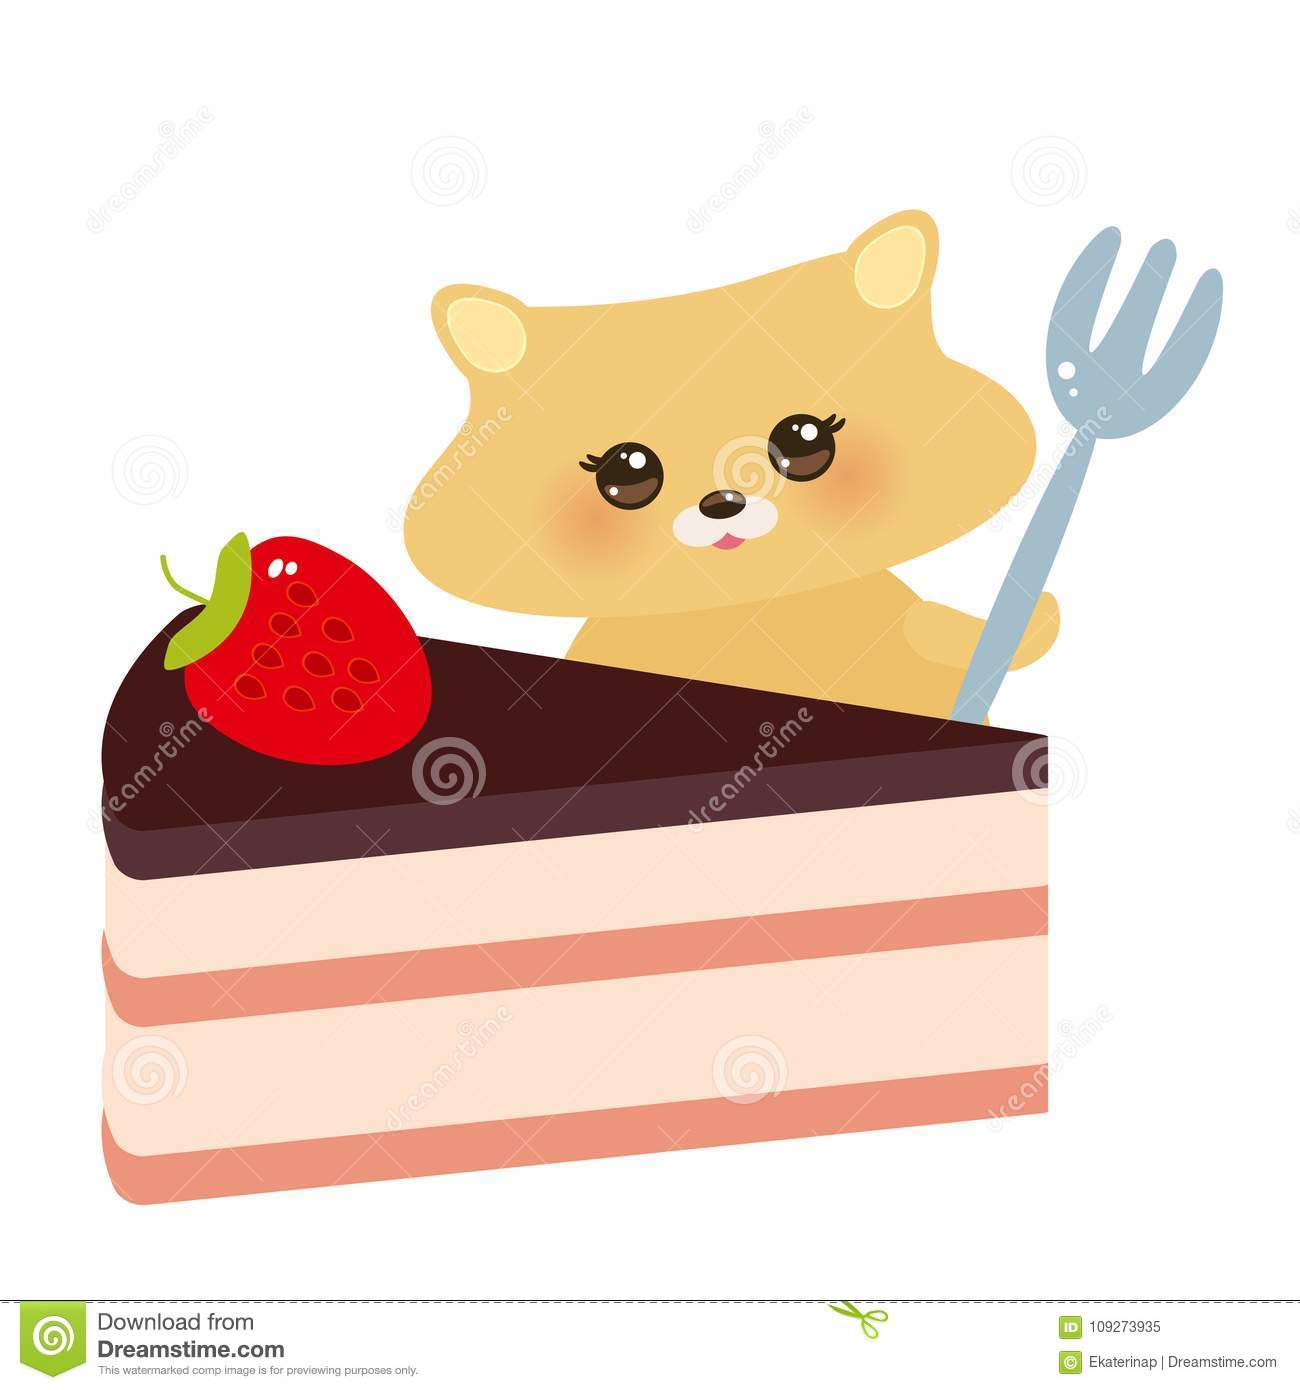 Cute kawaii hamster with fork, Sweet cake decorated with fresh Strawberry, pink cream and chocolate icing, pastel colors on white